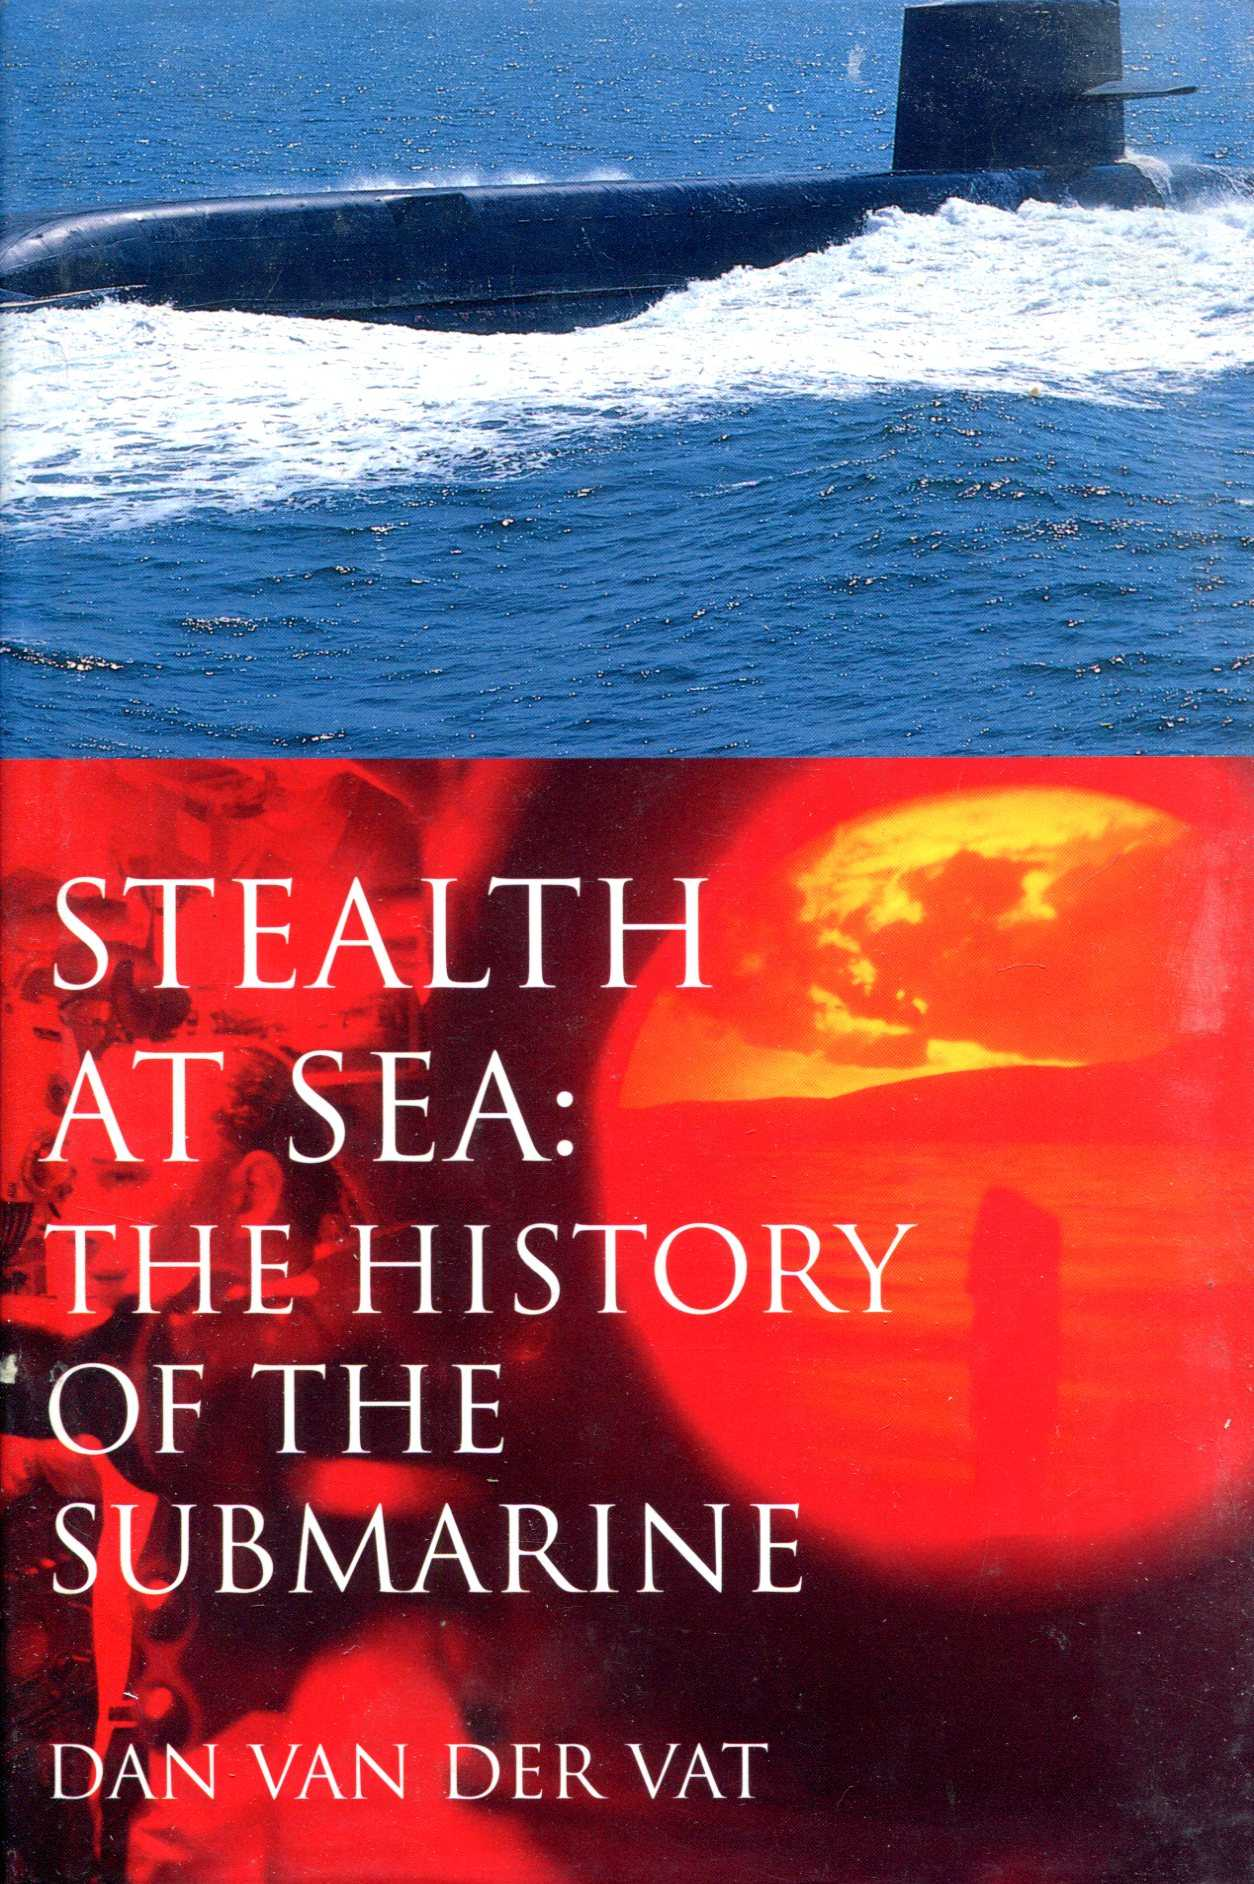 Image for Stealth At Sea: The History of the Submarine